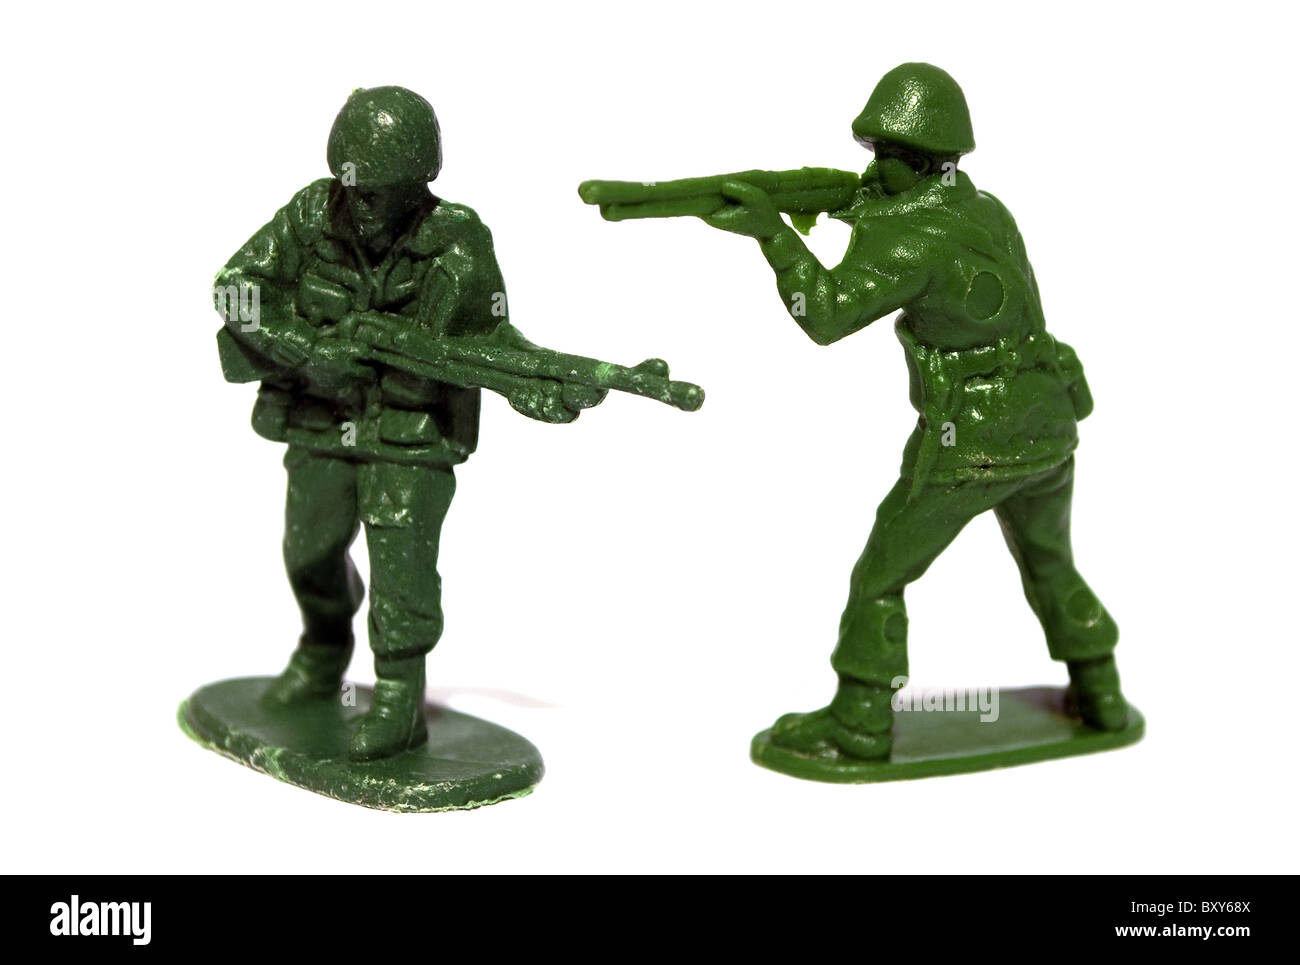 Toy Soldiers Toys 19